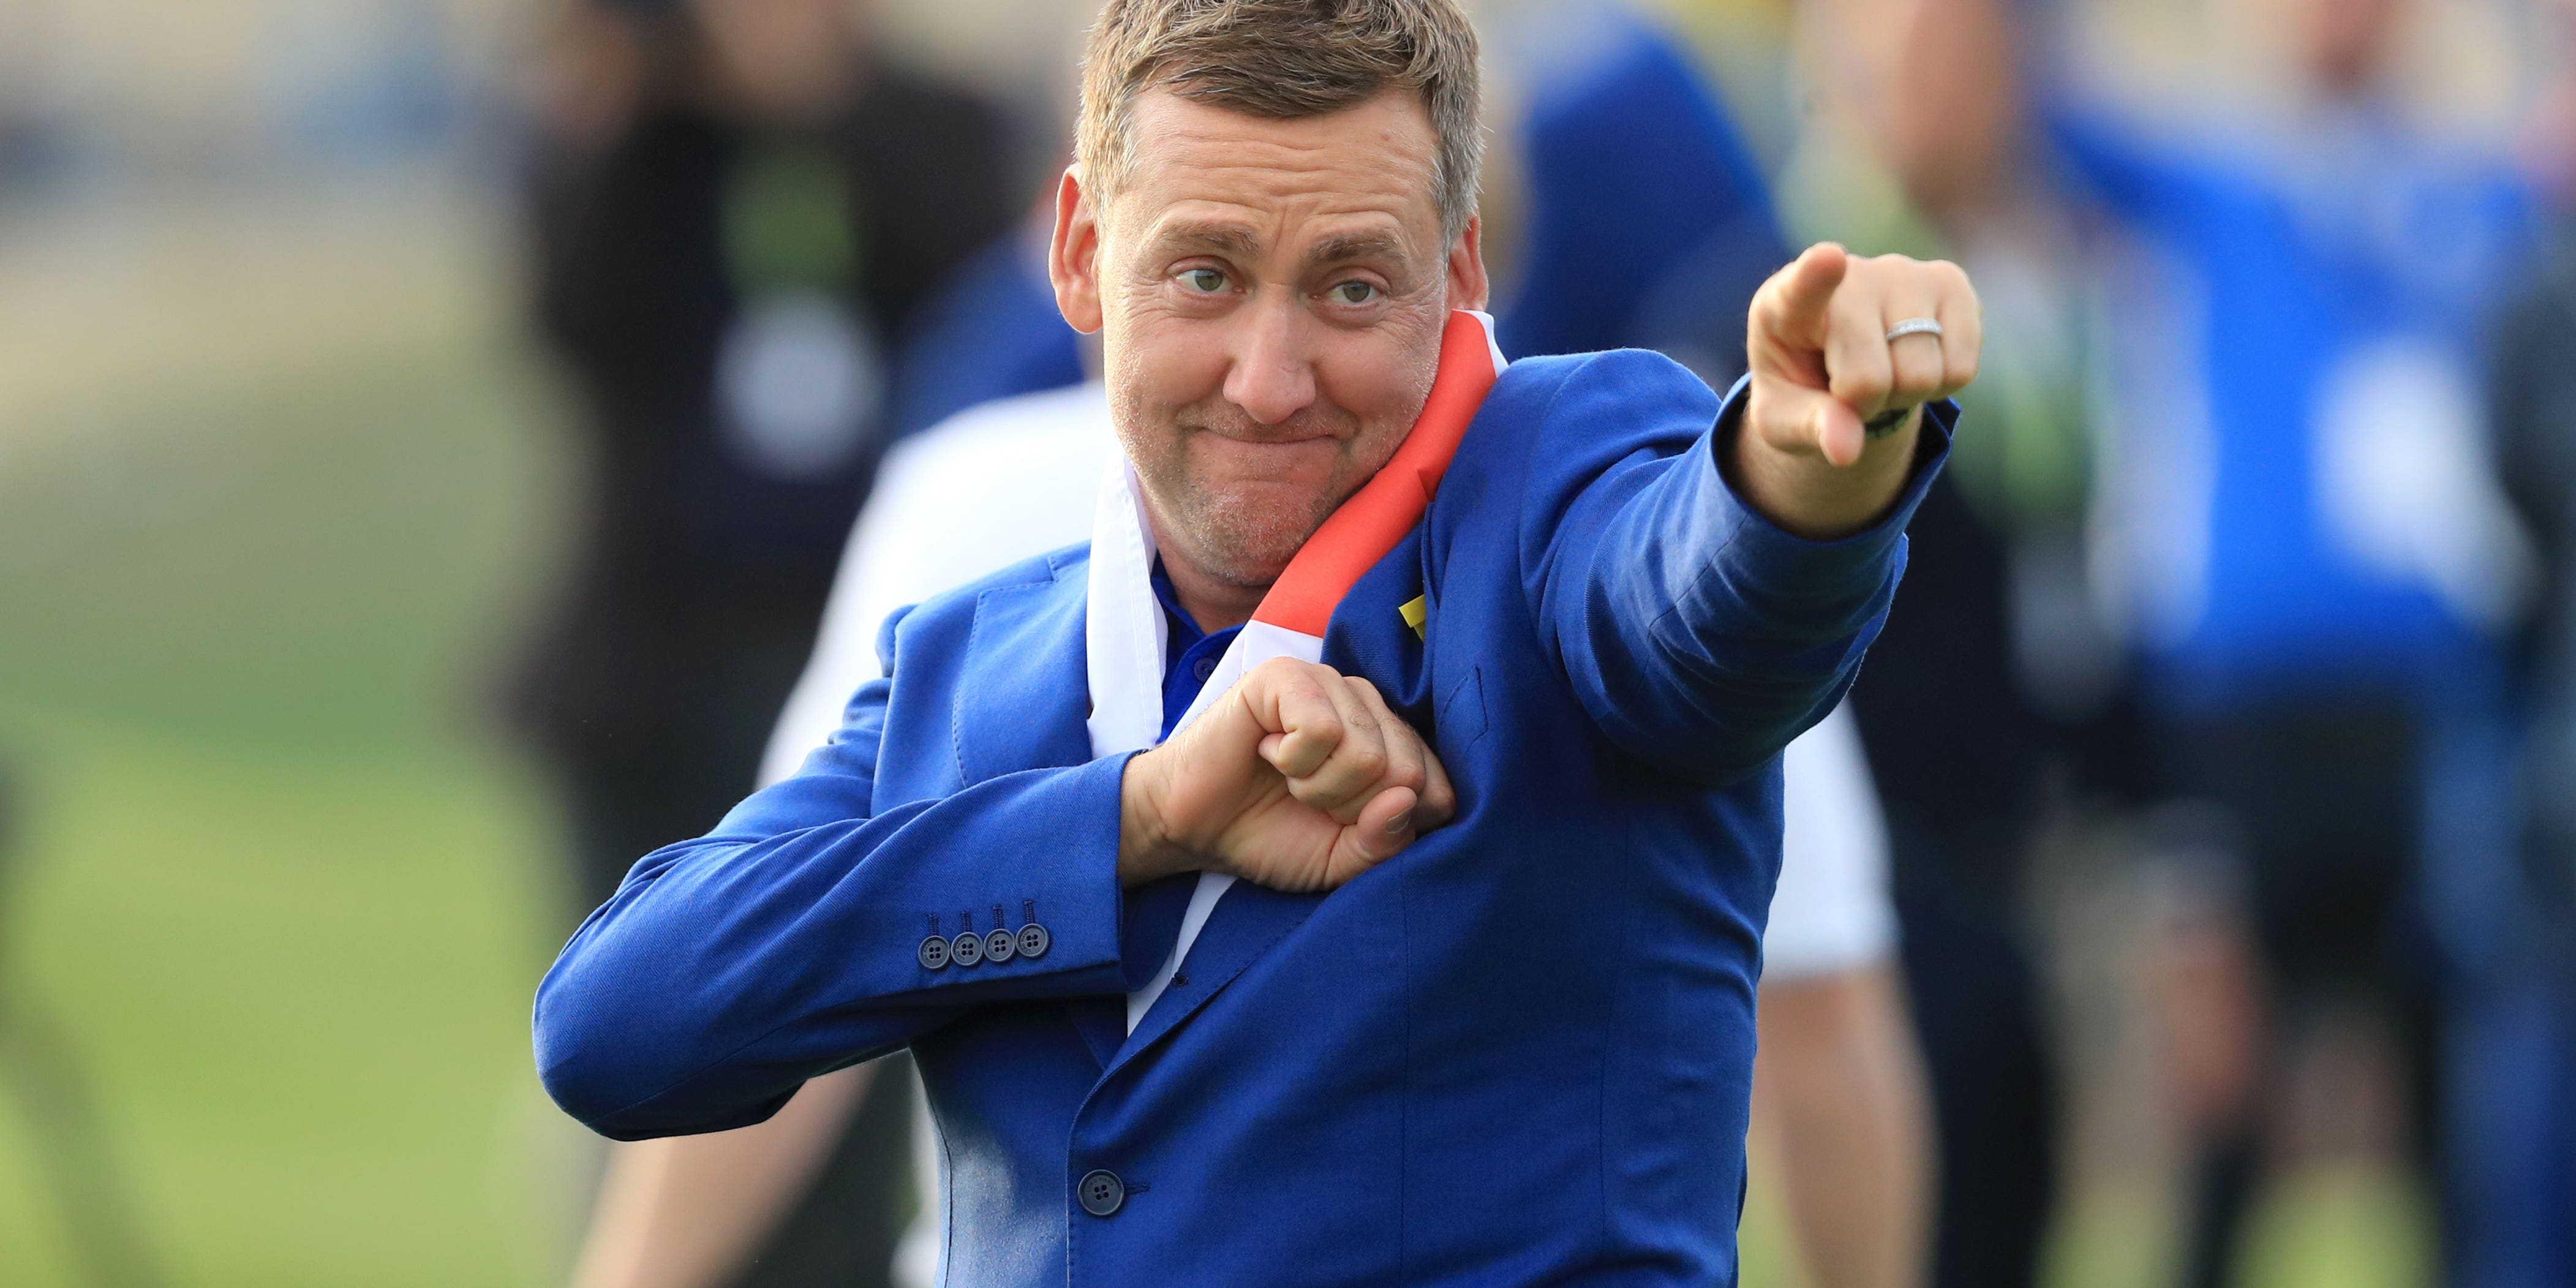 Ian Poulter: America's rookies are in for nerve wracking Ryder Cup experience - Golf365